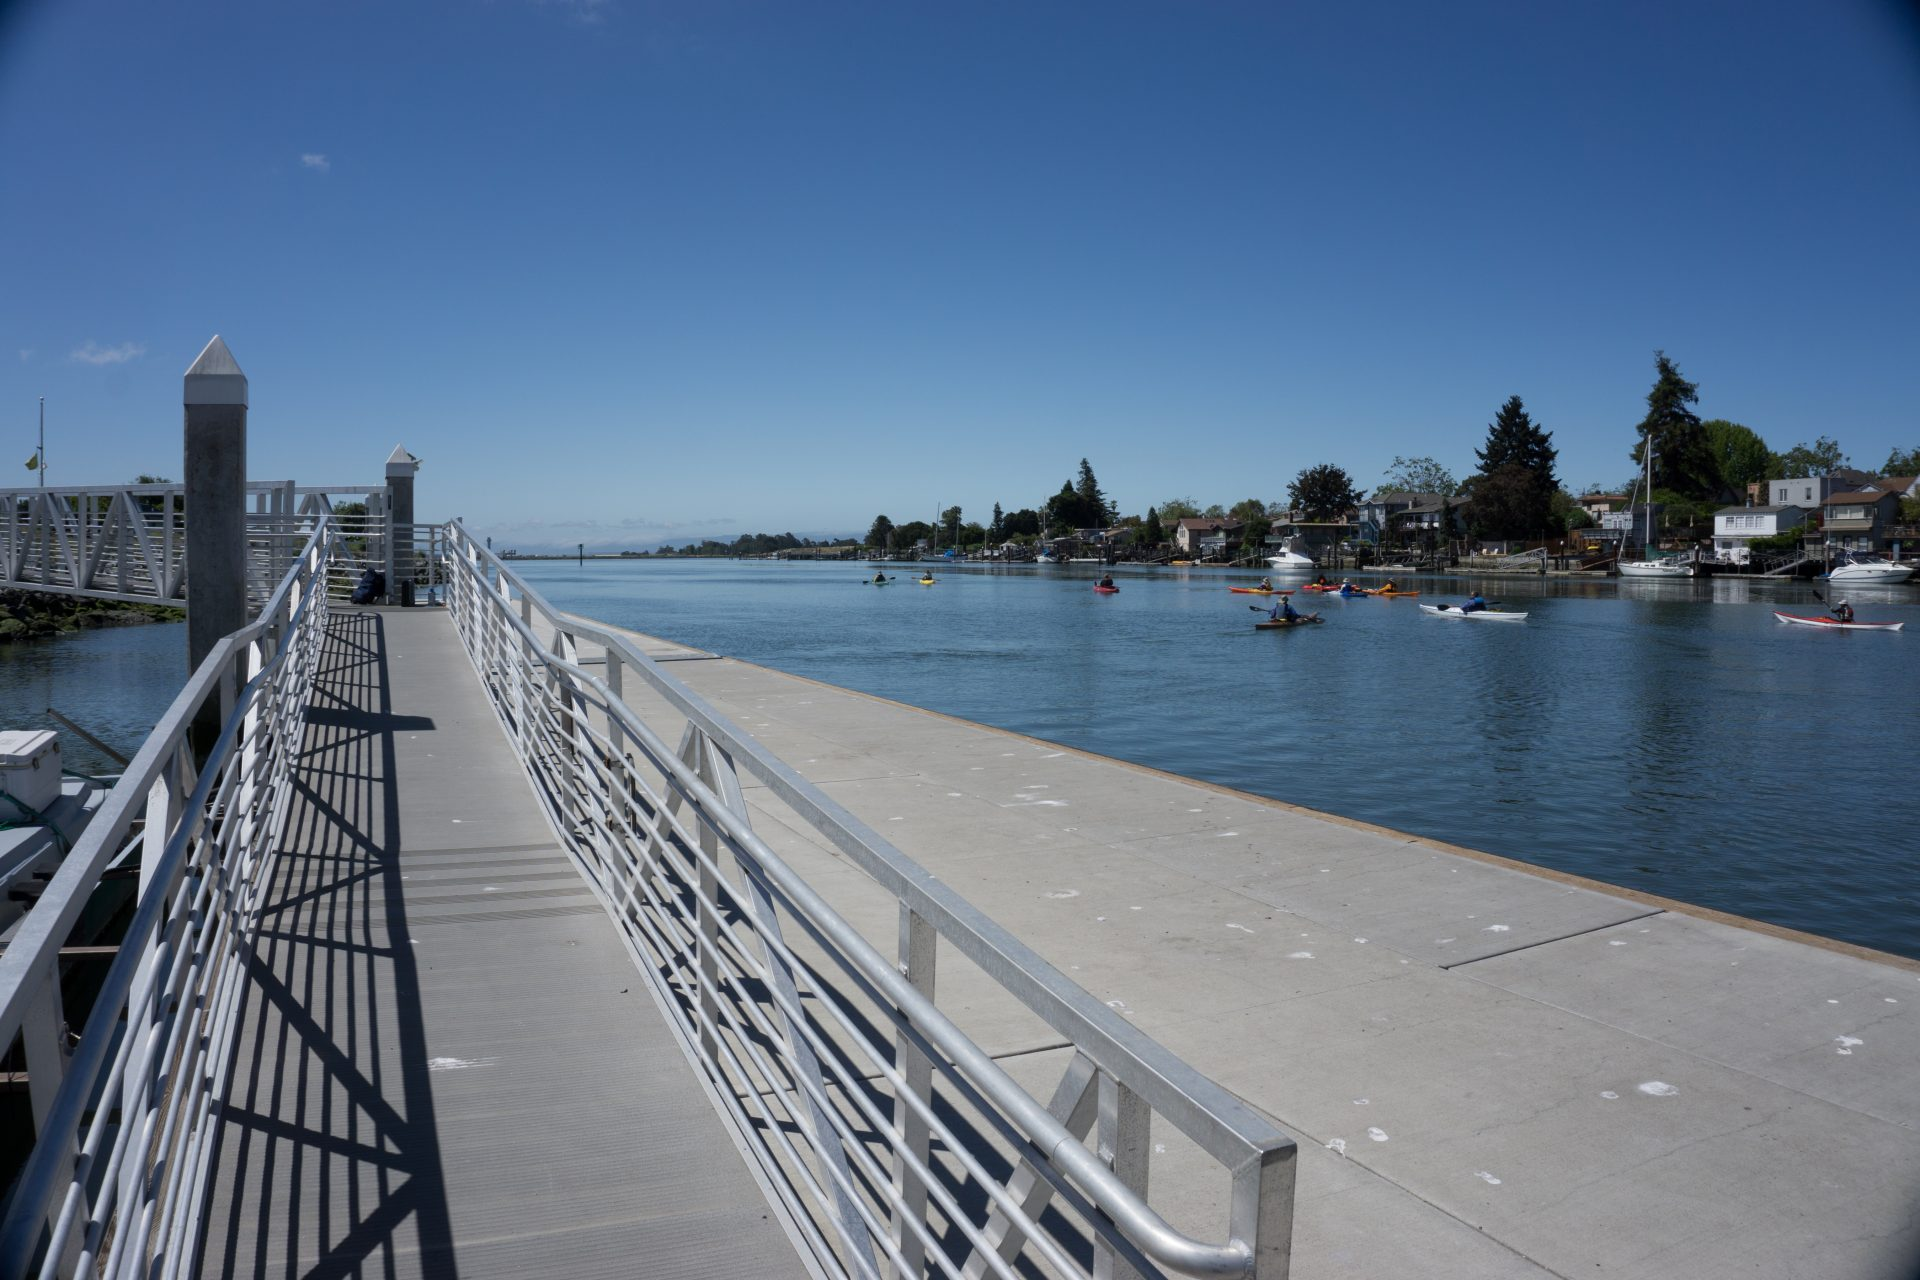 Long ramp with railings on left, lower floating dock on right